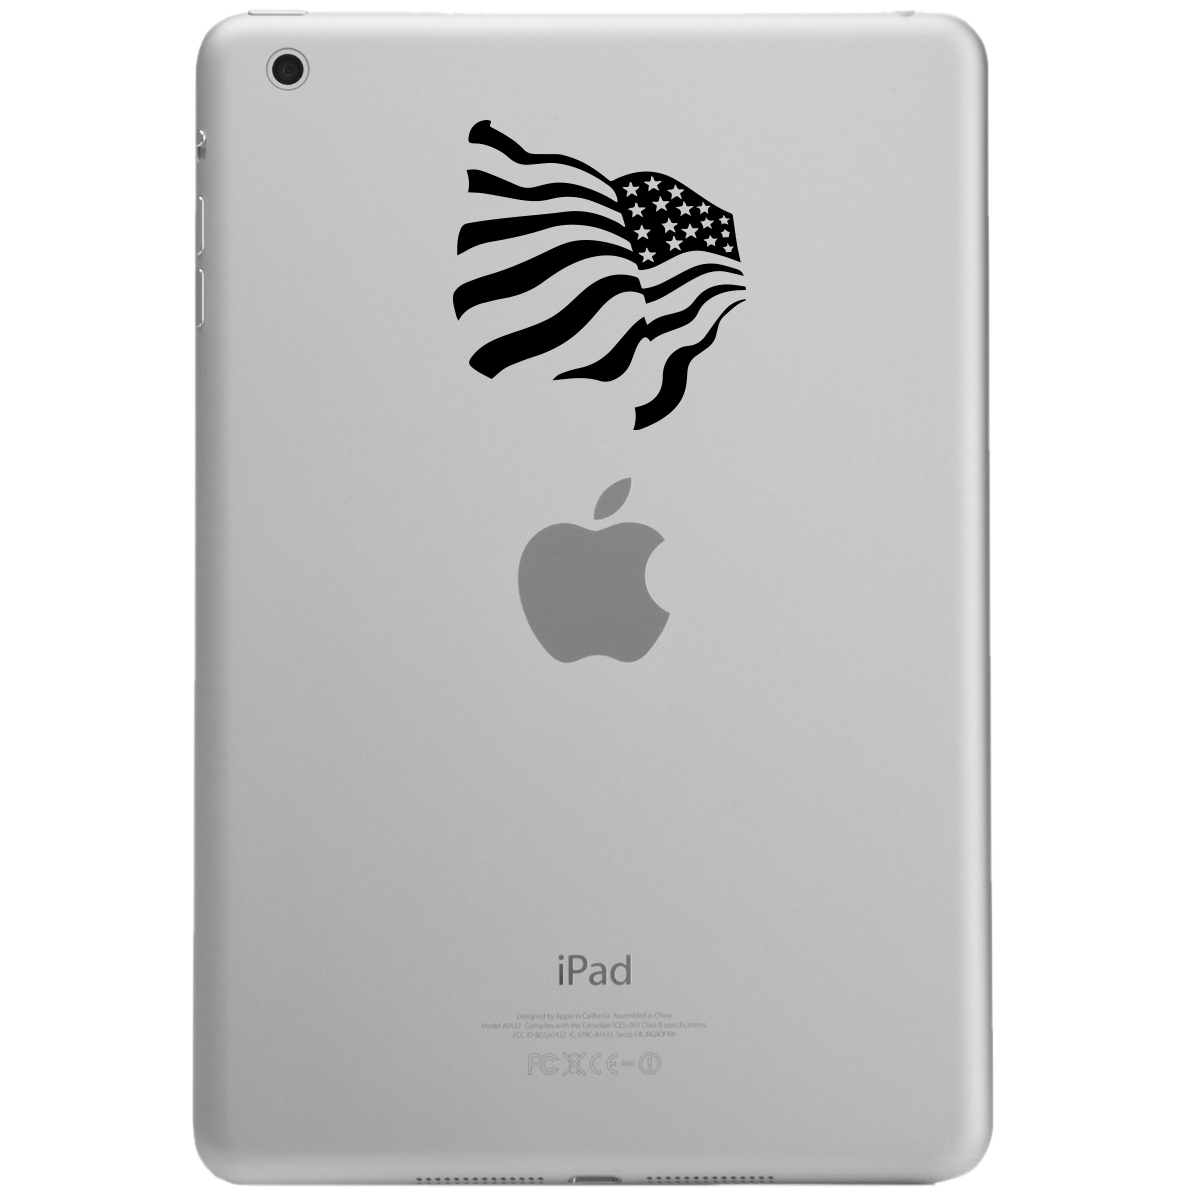 Patriotic Waving American USA Flag iPad Tablet Vinyl Sticker Decal